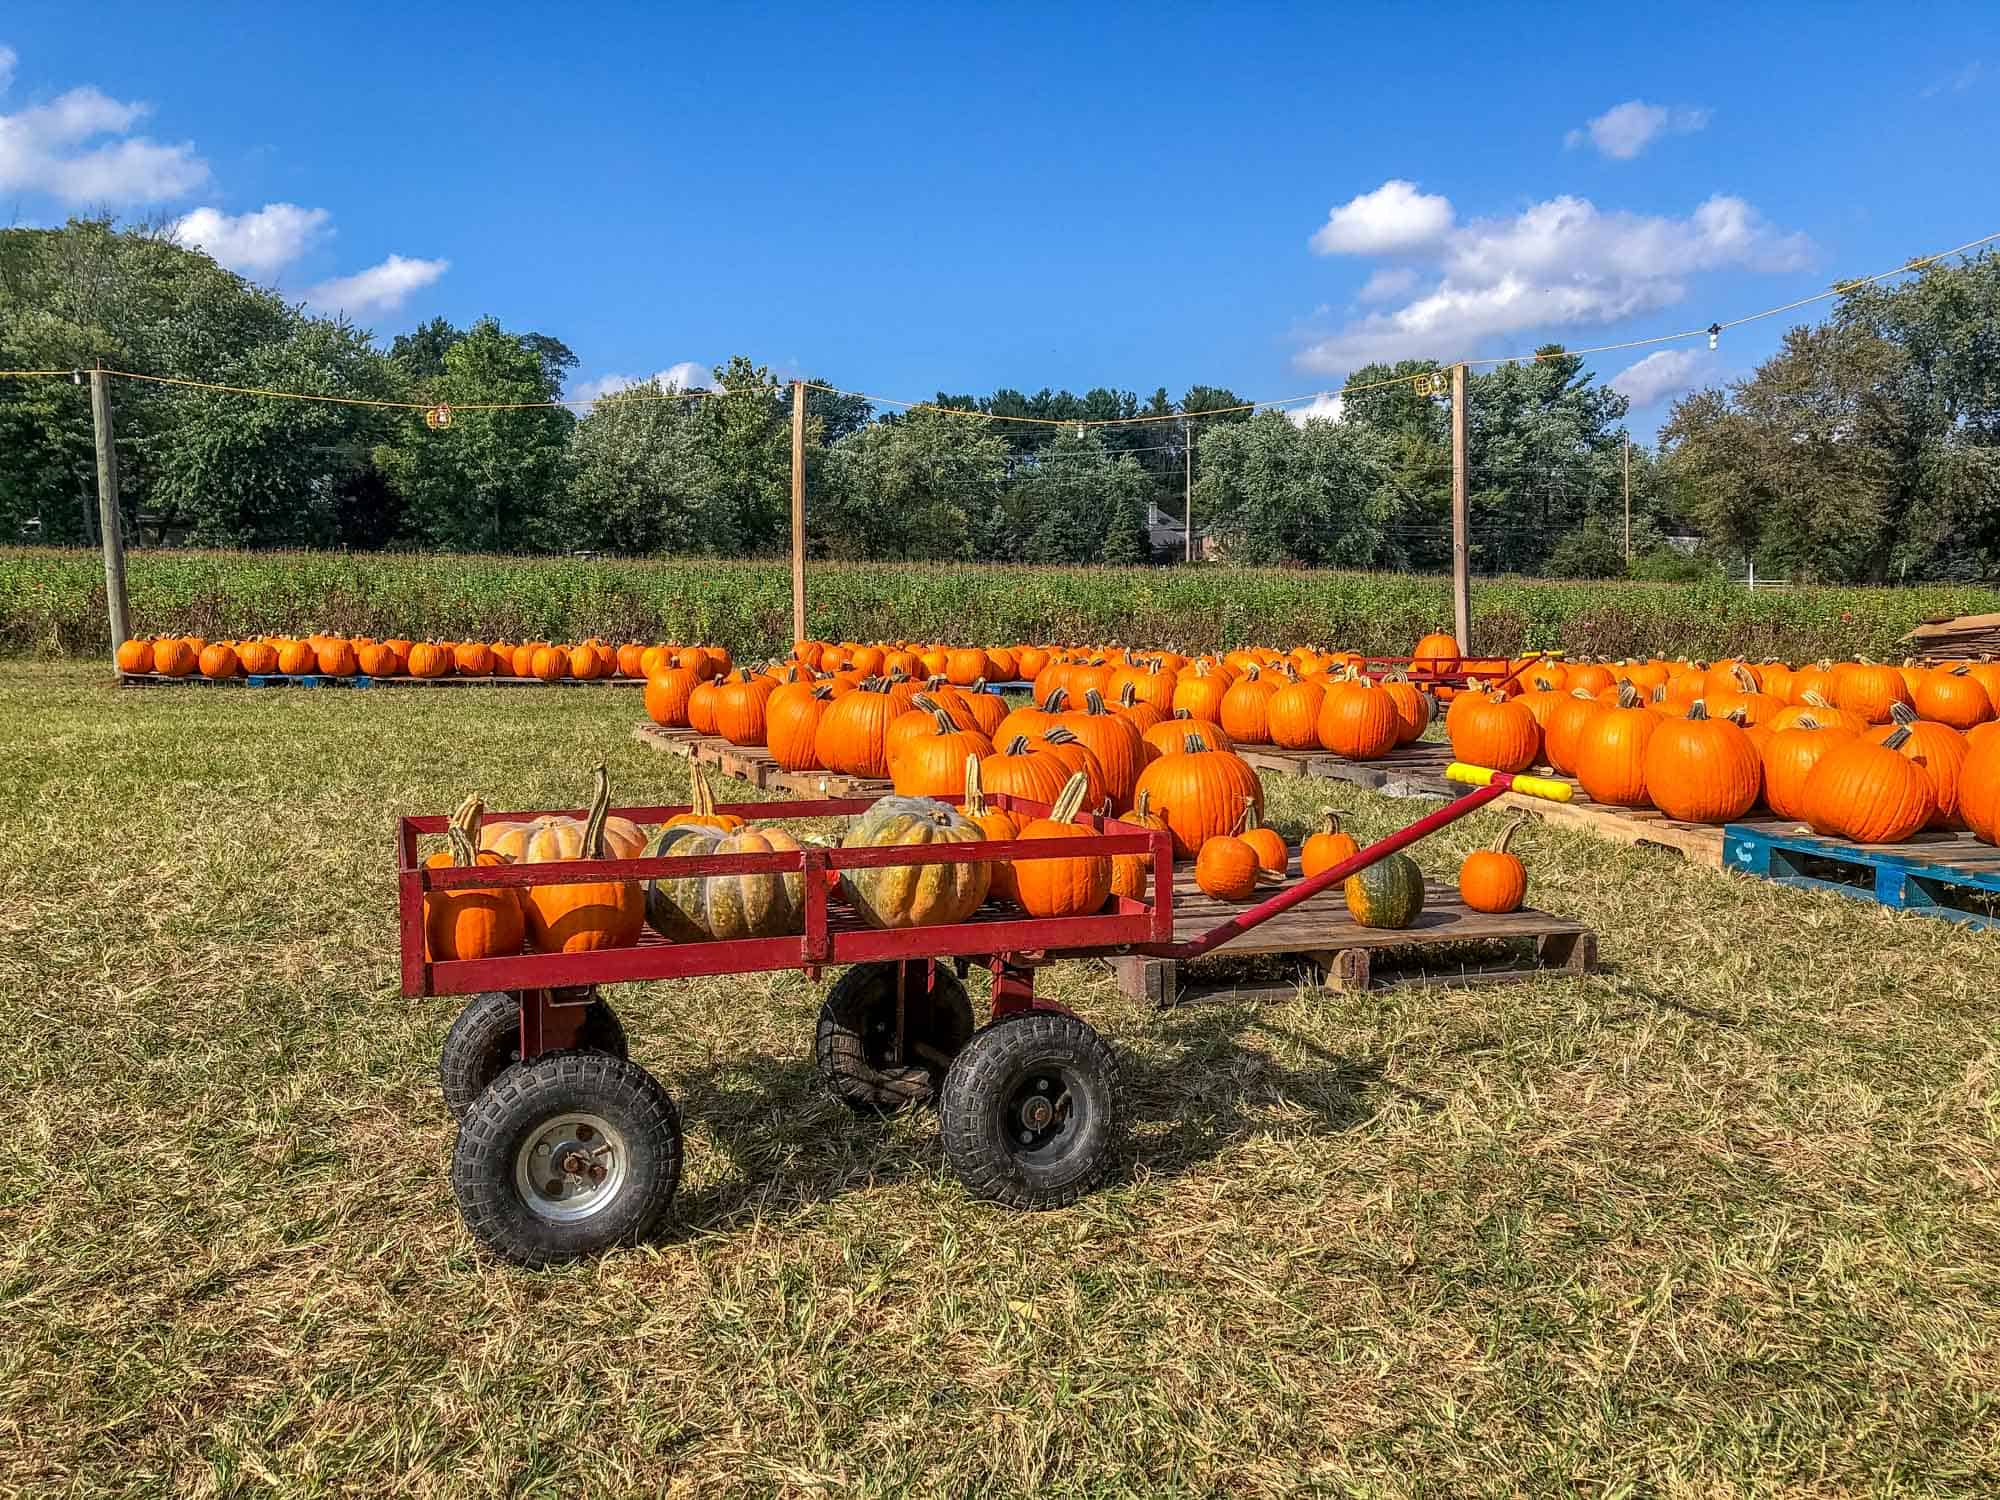 Pumpkins on wooden pallets and in a wagon at a farm